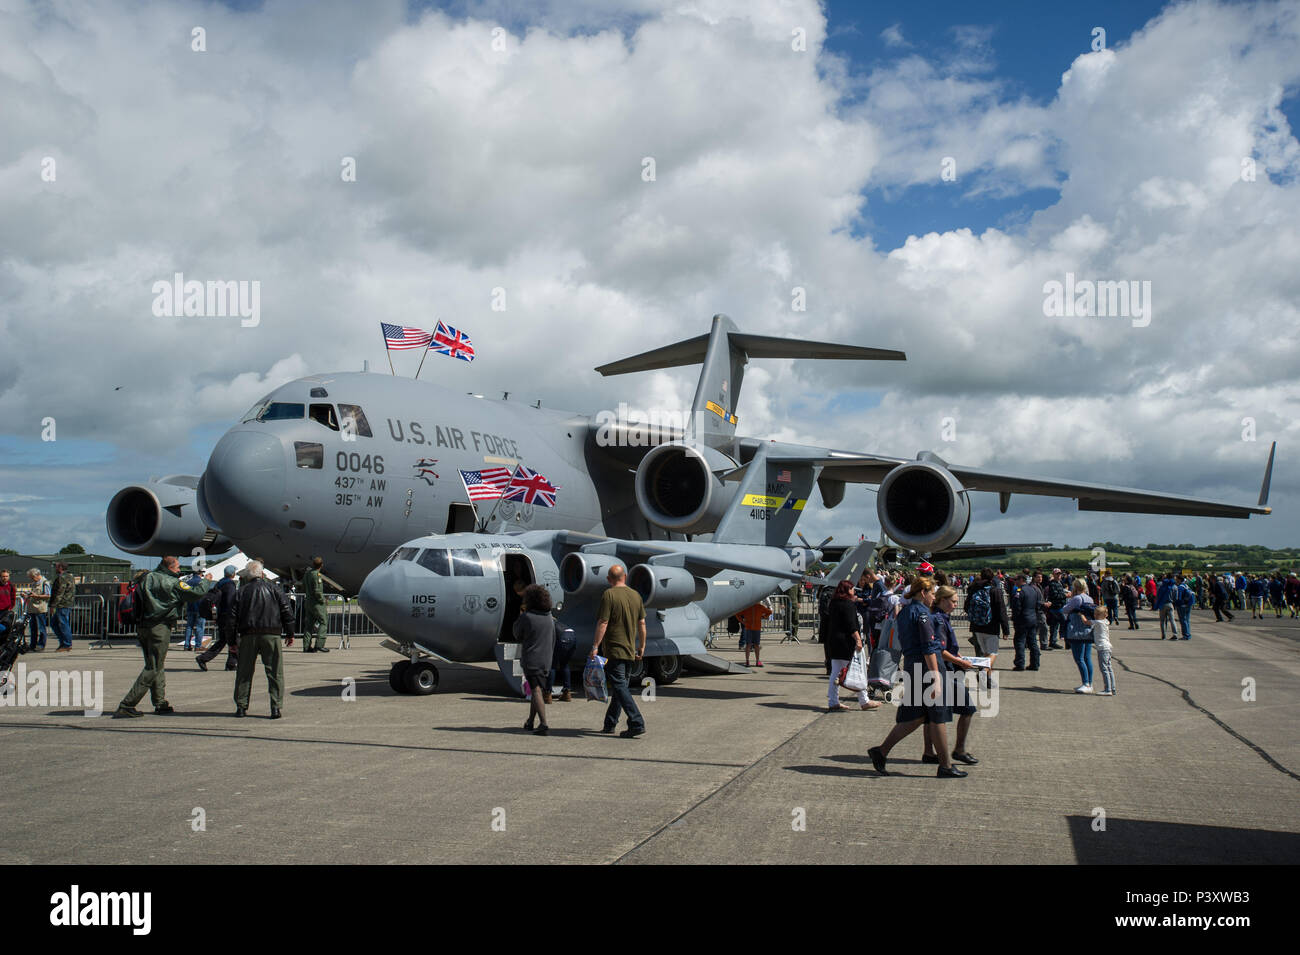 "Attendees of the Yeovilton, England crowd around the 315th Airift Wing's mini C-17 and a Charleston C-17 Globemaster III July 2. This was the mini C-17's first trip across the pond and was a huge hit at Yeovilton Air Day 2016. This is the 315th AWs second time visiting Royal Naval Air Station Yeovilton, England, and the mighty presence of the mini C-17 helped seal the deal for another ""Best Static Display"" award. The miniature C-17 has been used all across the United States to promote the Air Force Reserve and bolster recruiting efforts at air shows, parades and other community events. (U.S. A - Stock Image"